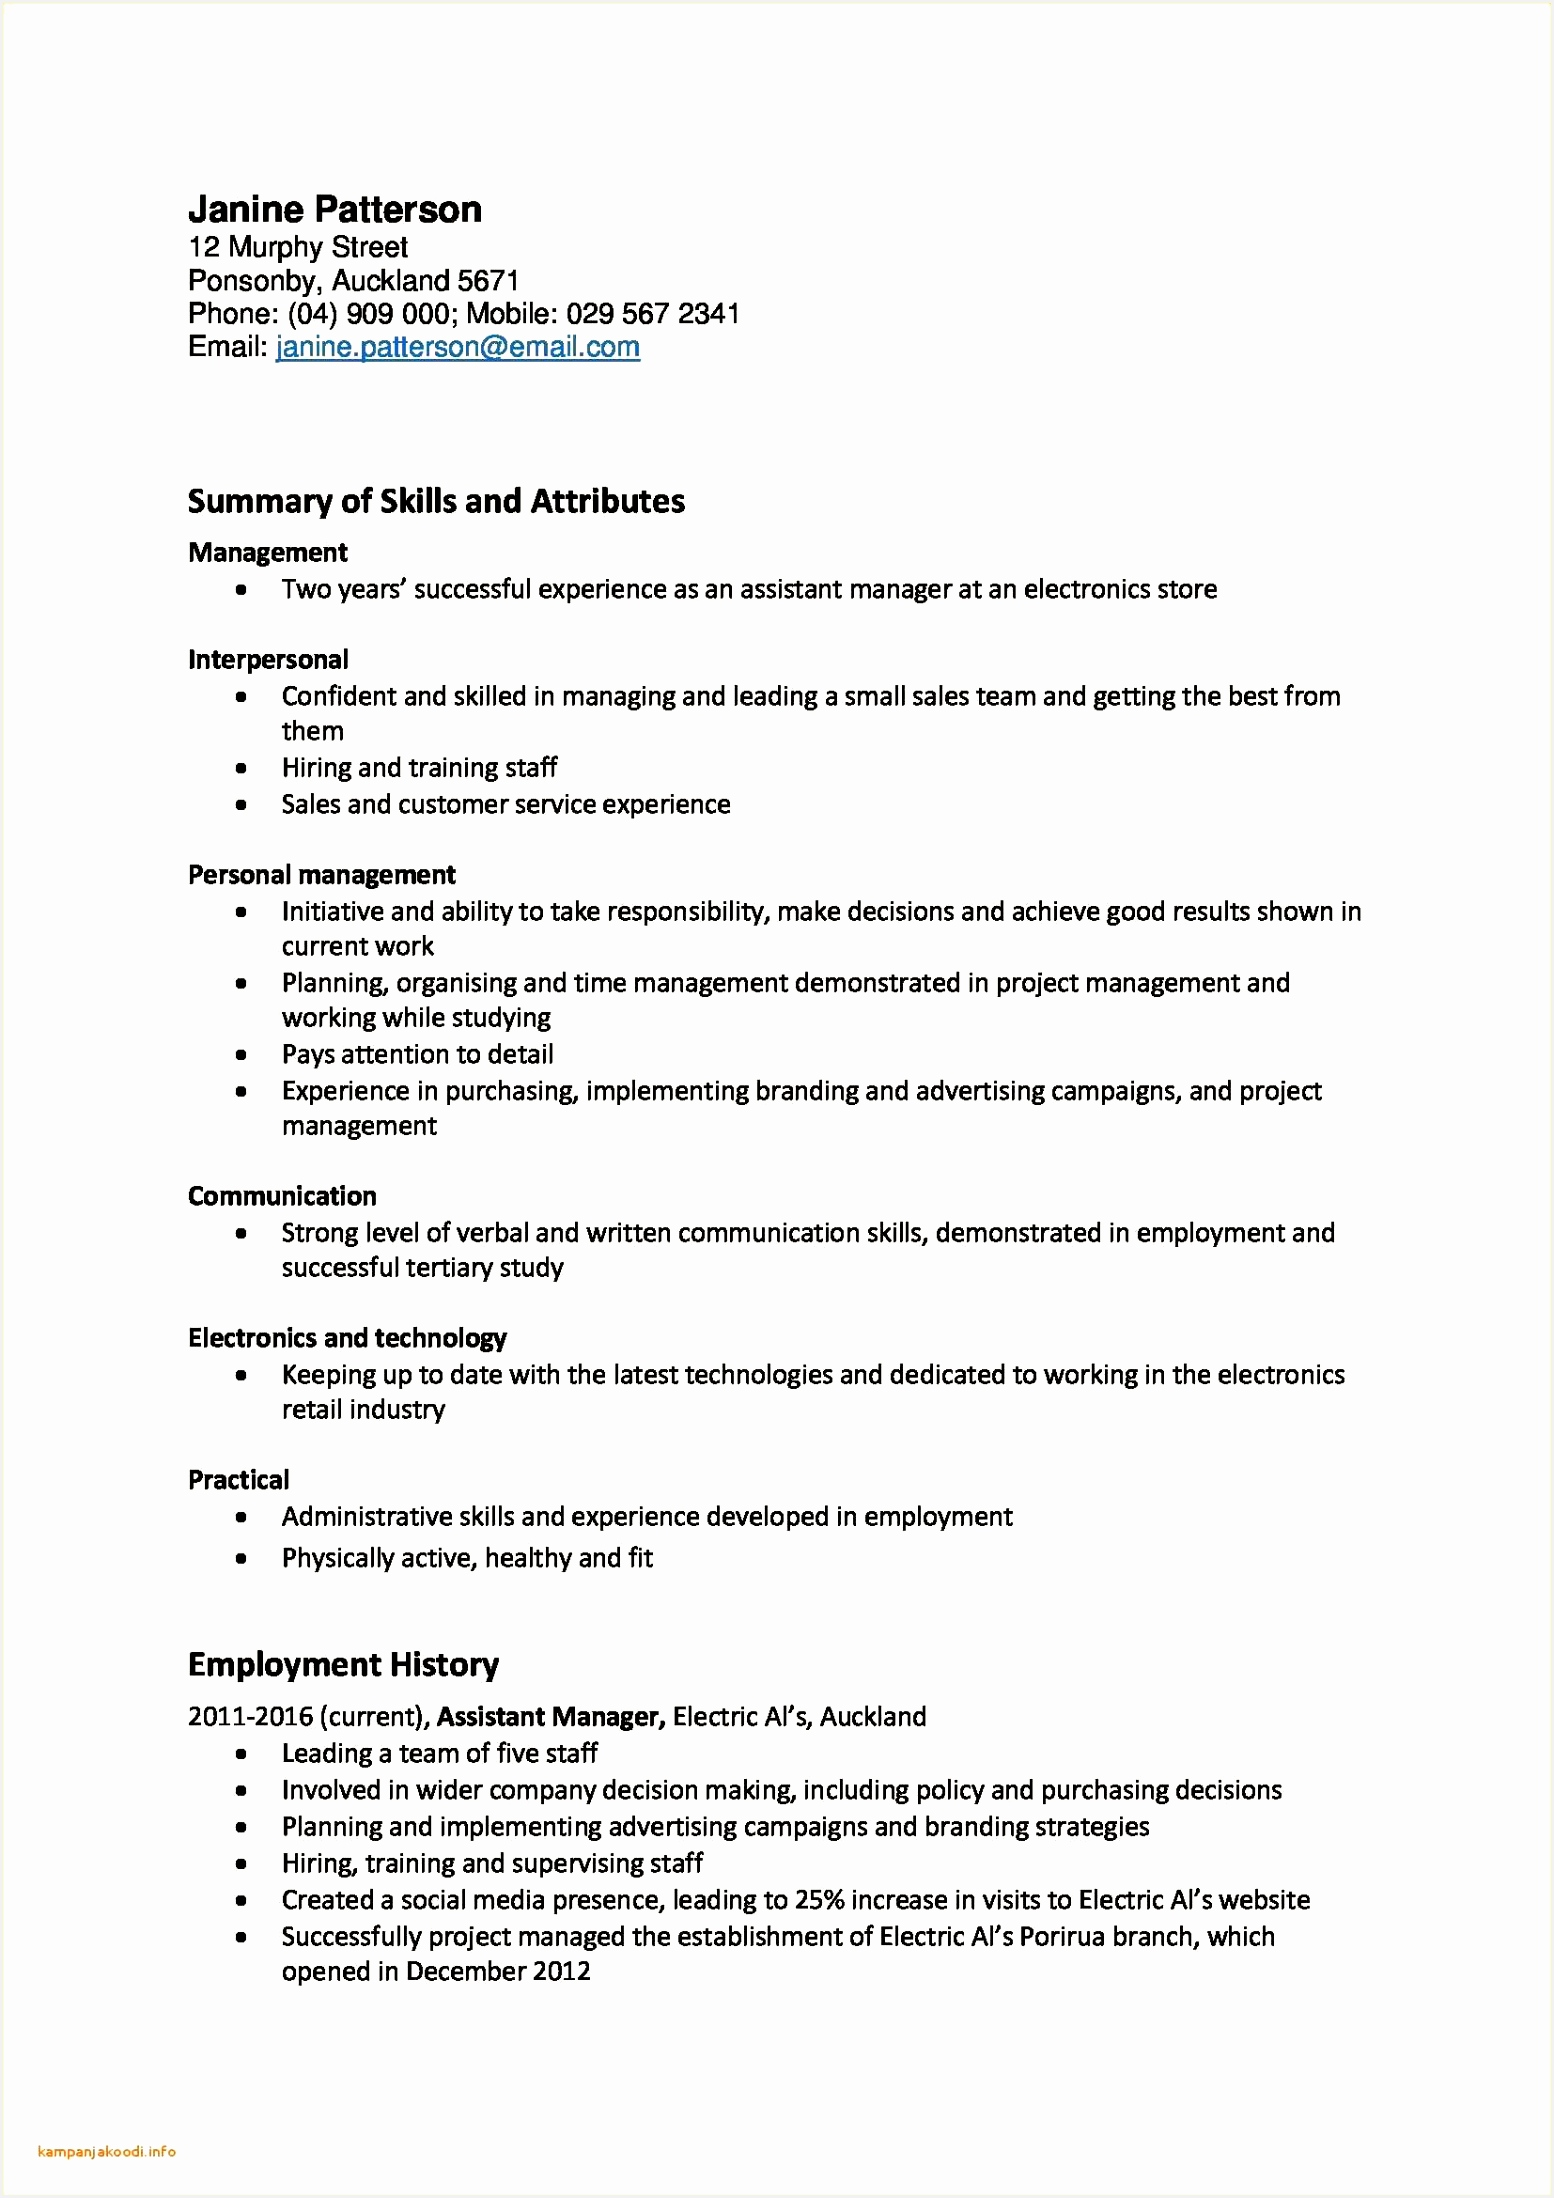 Manager assistant Sample Resume Ajedq New Resume for Store Manager Sample Store Manager Job Description Resume Of Manager assistant Sample Resume E2elo Luxury assistant Manager Job Description Resume Examples 29 Bank Manager